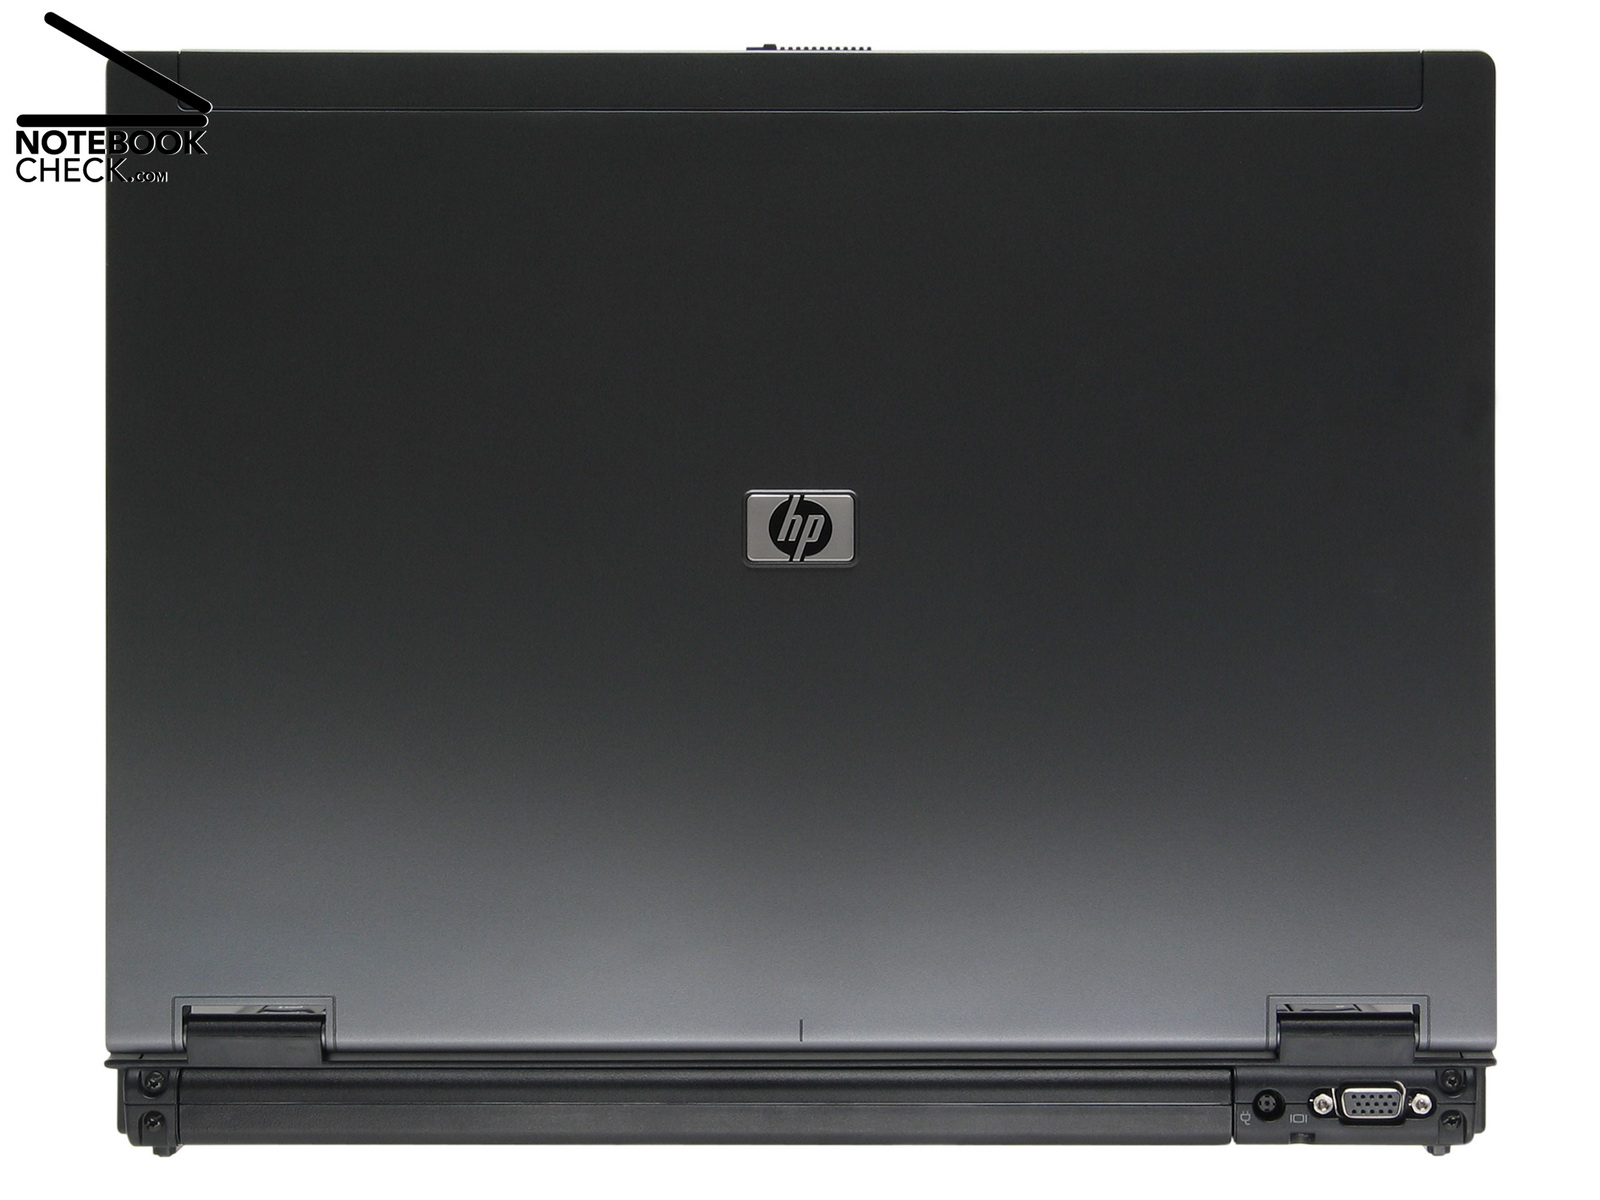 HP COMPAQ 8510W MOBILE WORKSTATION INTEL 82566MM LAN 64BIT DRIVER